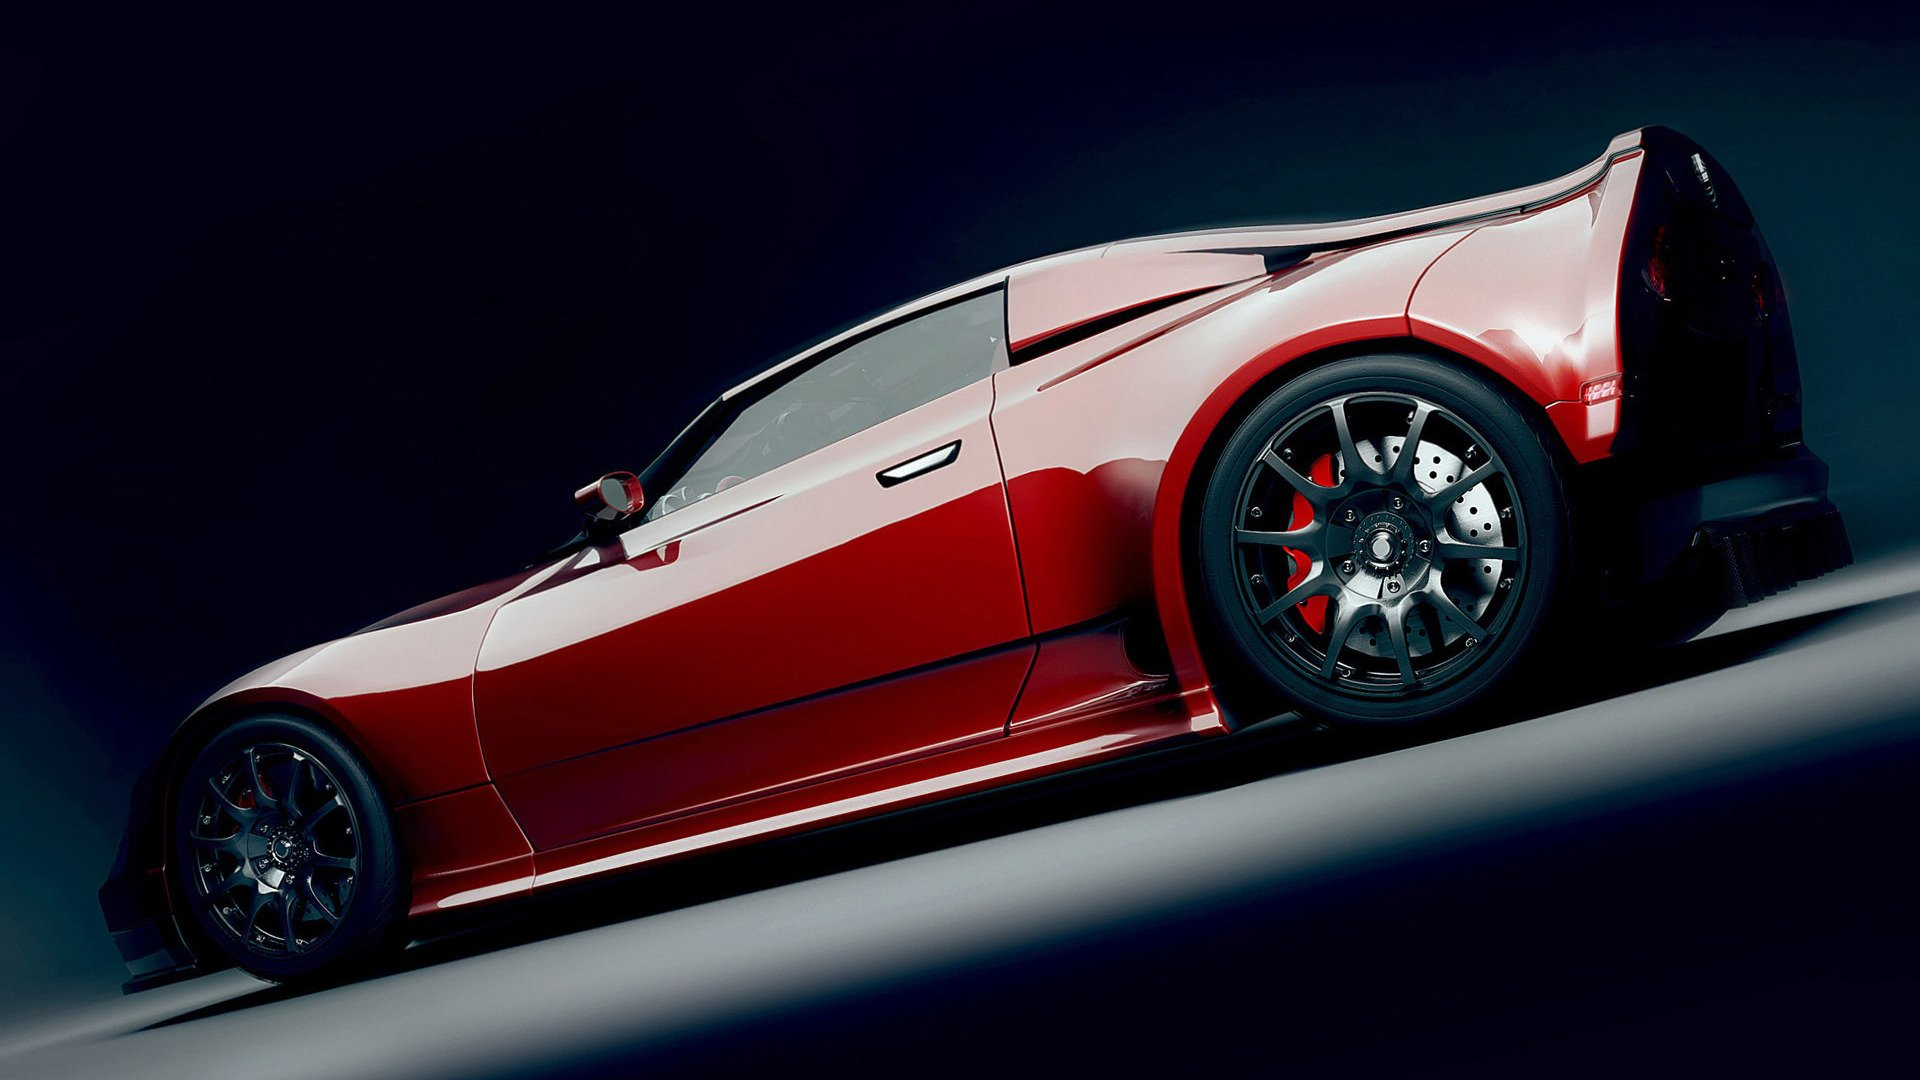 Alpha Coders Car Wallpapers Corvette Full Hd Wallpaper And Background Image